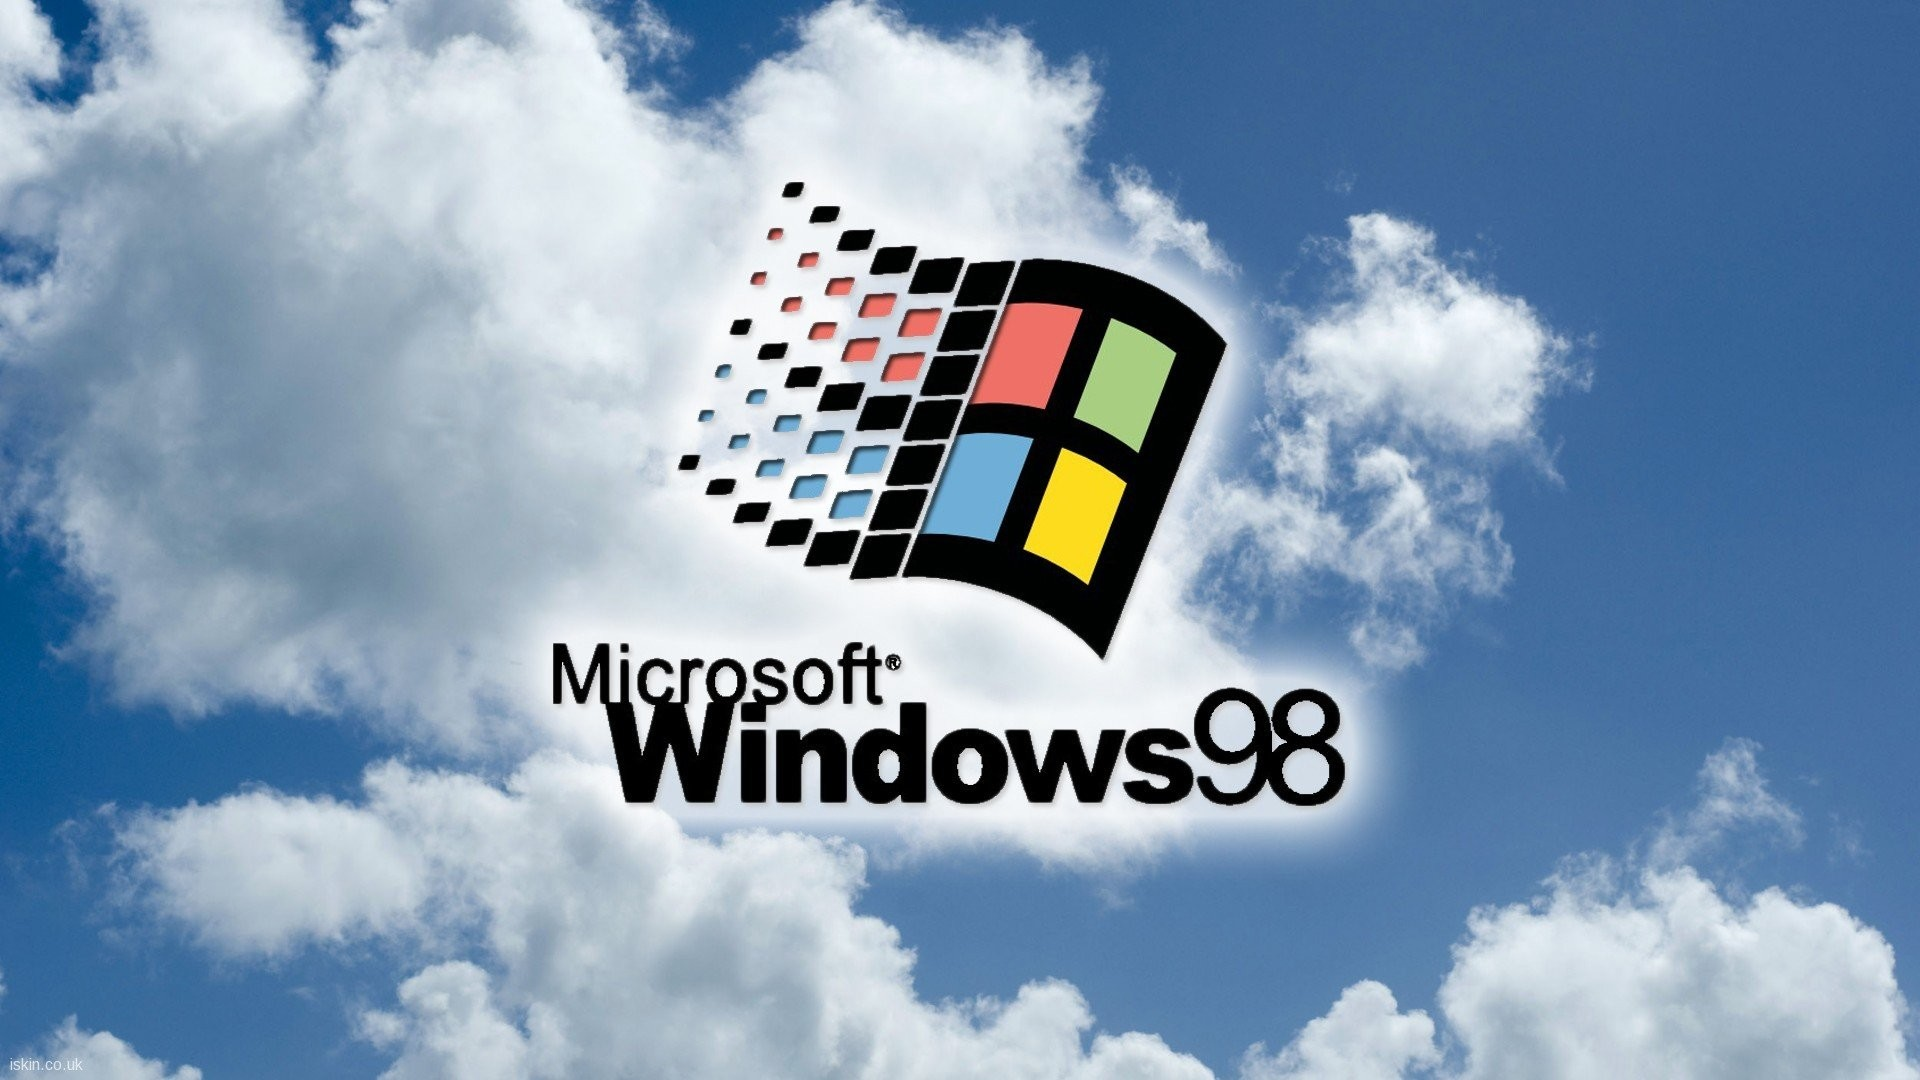 1920x1080 Windows 98 Microsoft Vintage 90s Computers